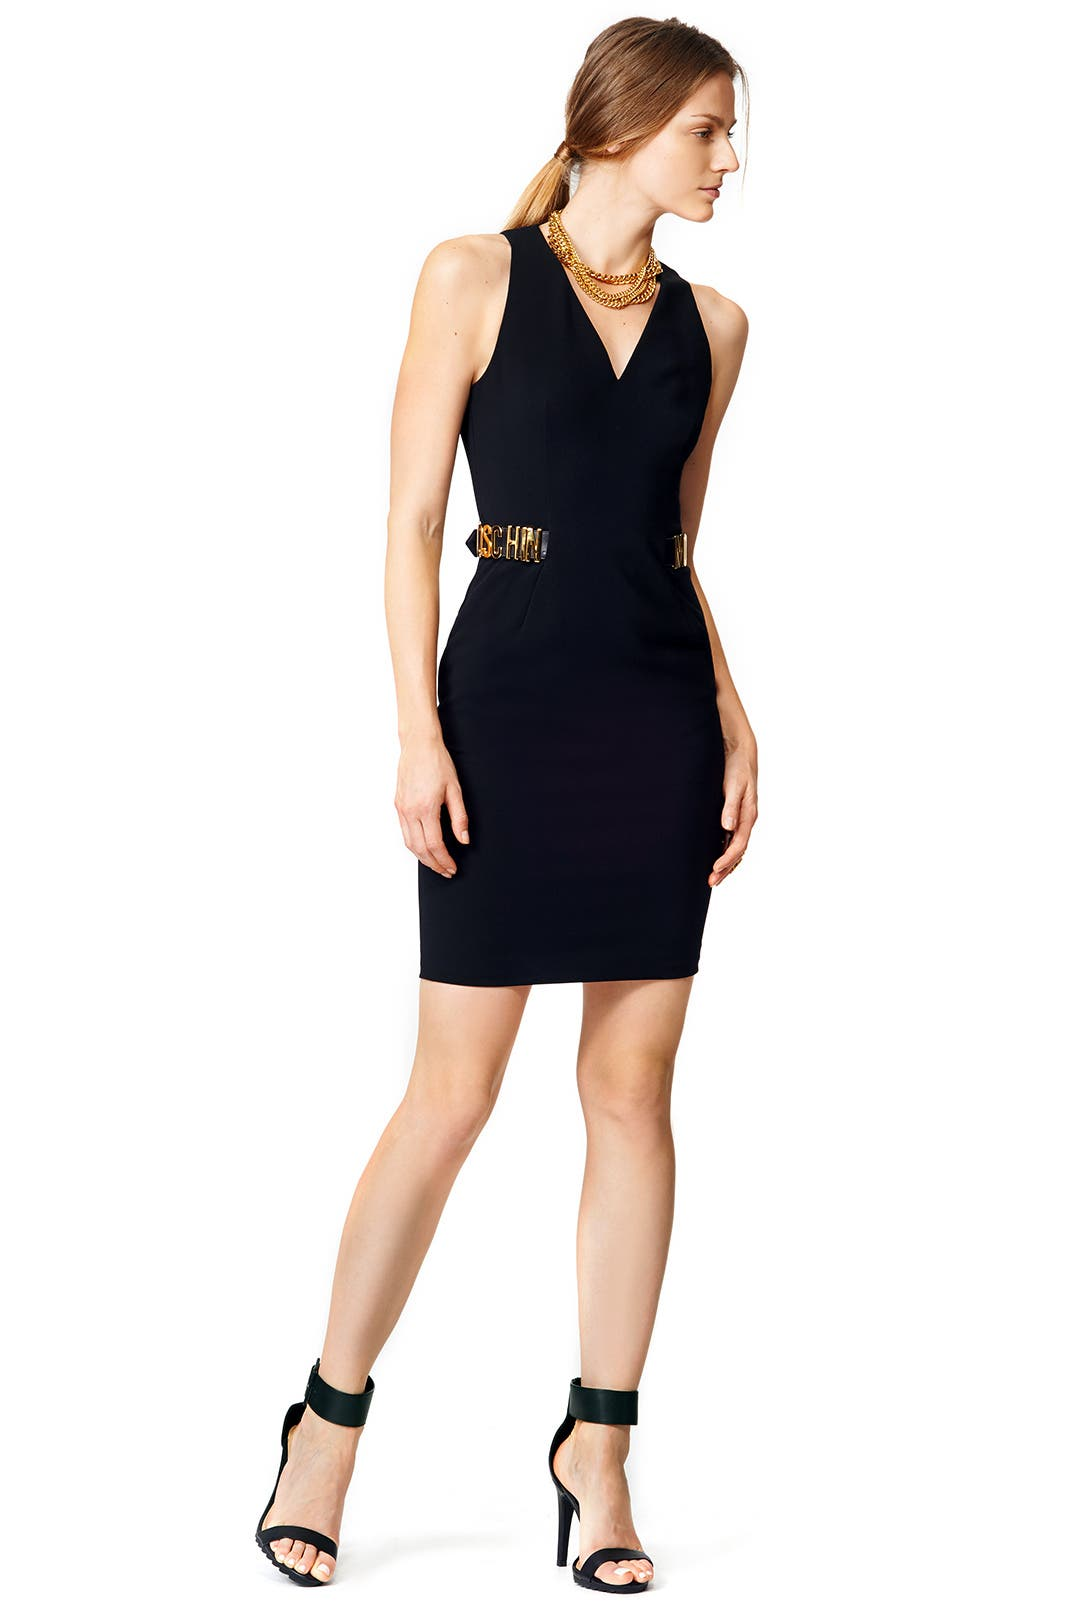 c81ccfd600 Dresses  Brand Moschino Great selection and prices for Wedding Gifts ...